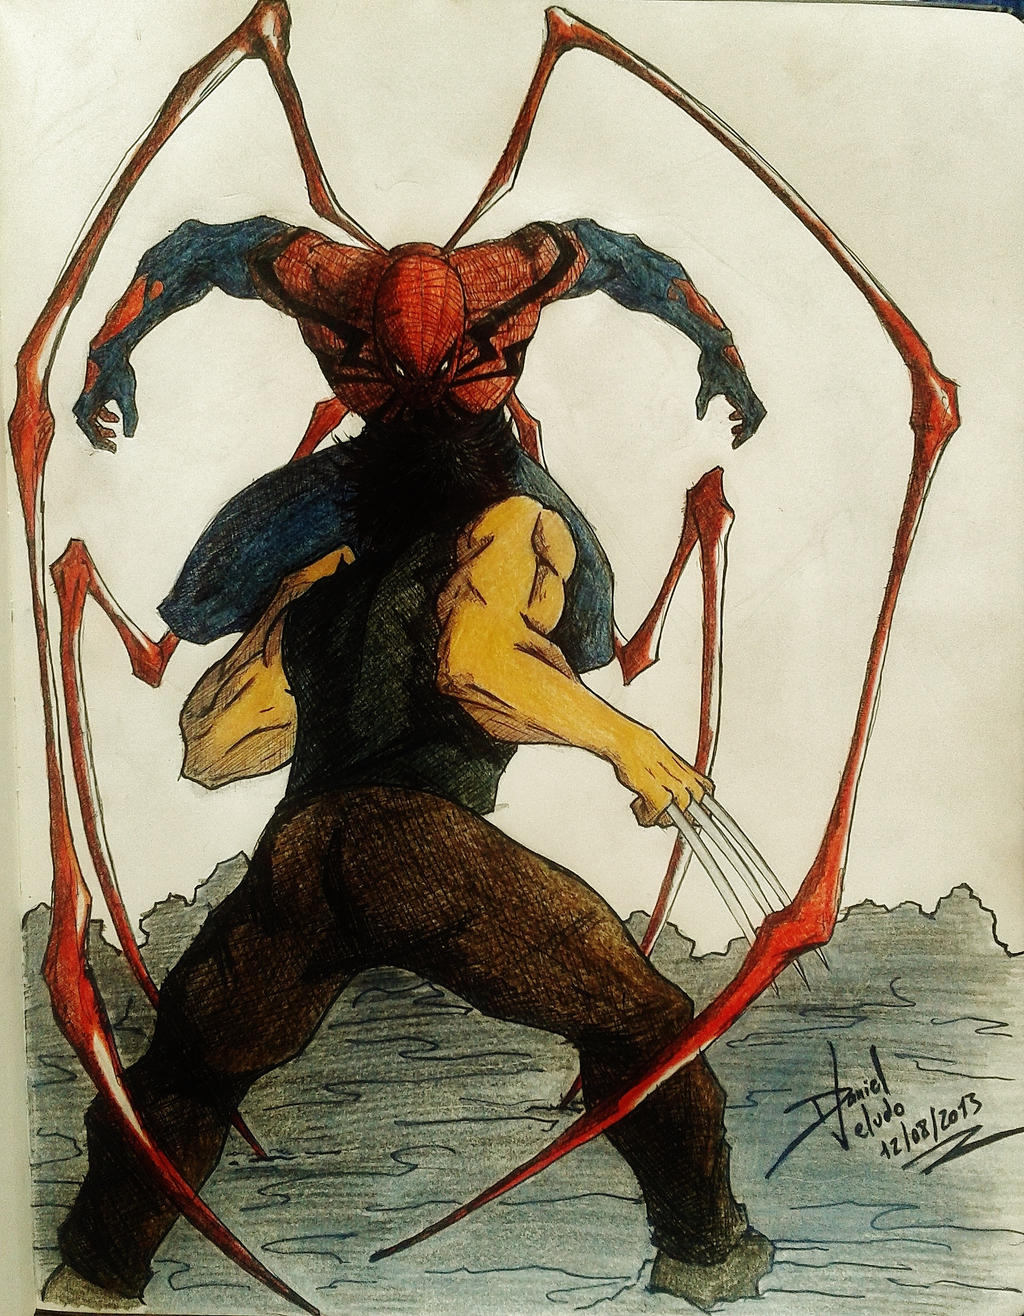 The battle between the Spider and the Wolf!!